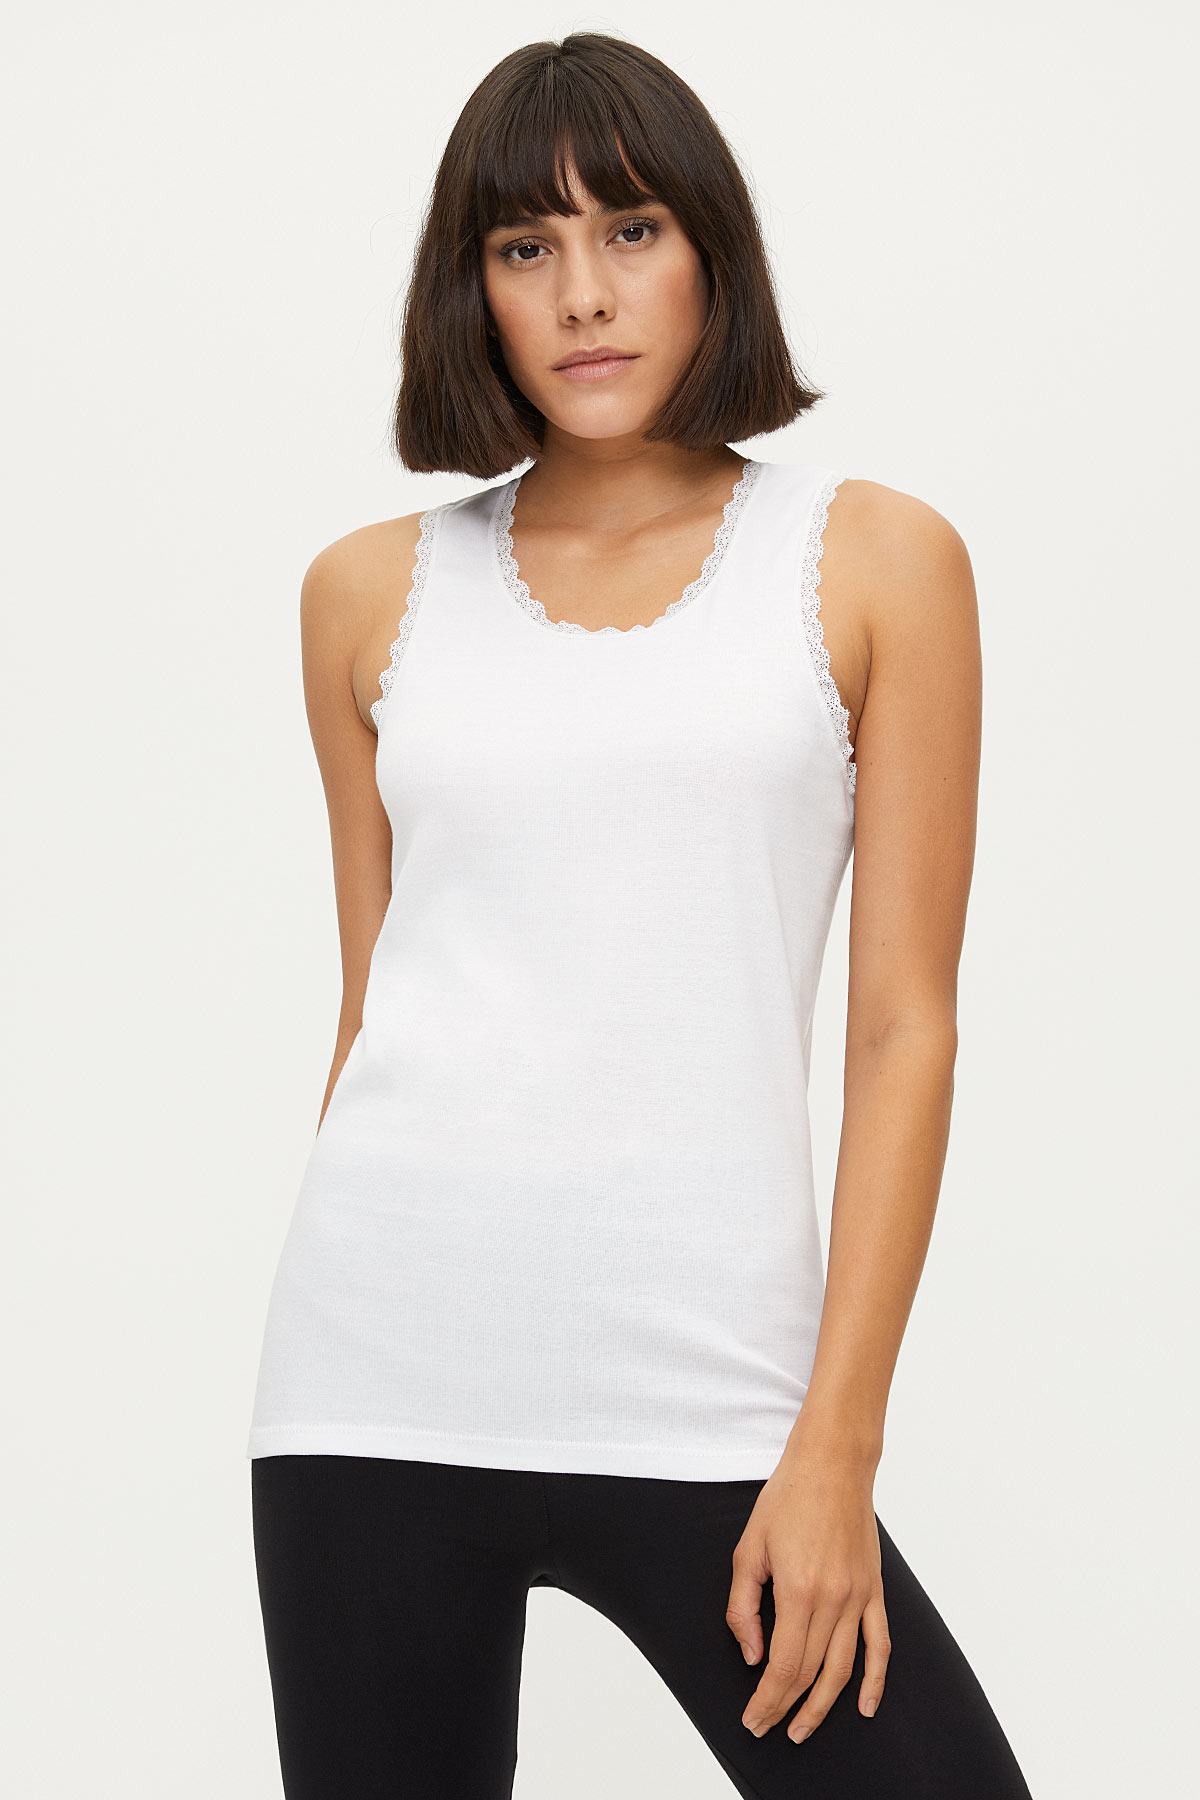 Bross - 1034 100% Cotton Wide Strappy Lace Women's Undershirt